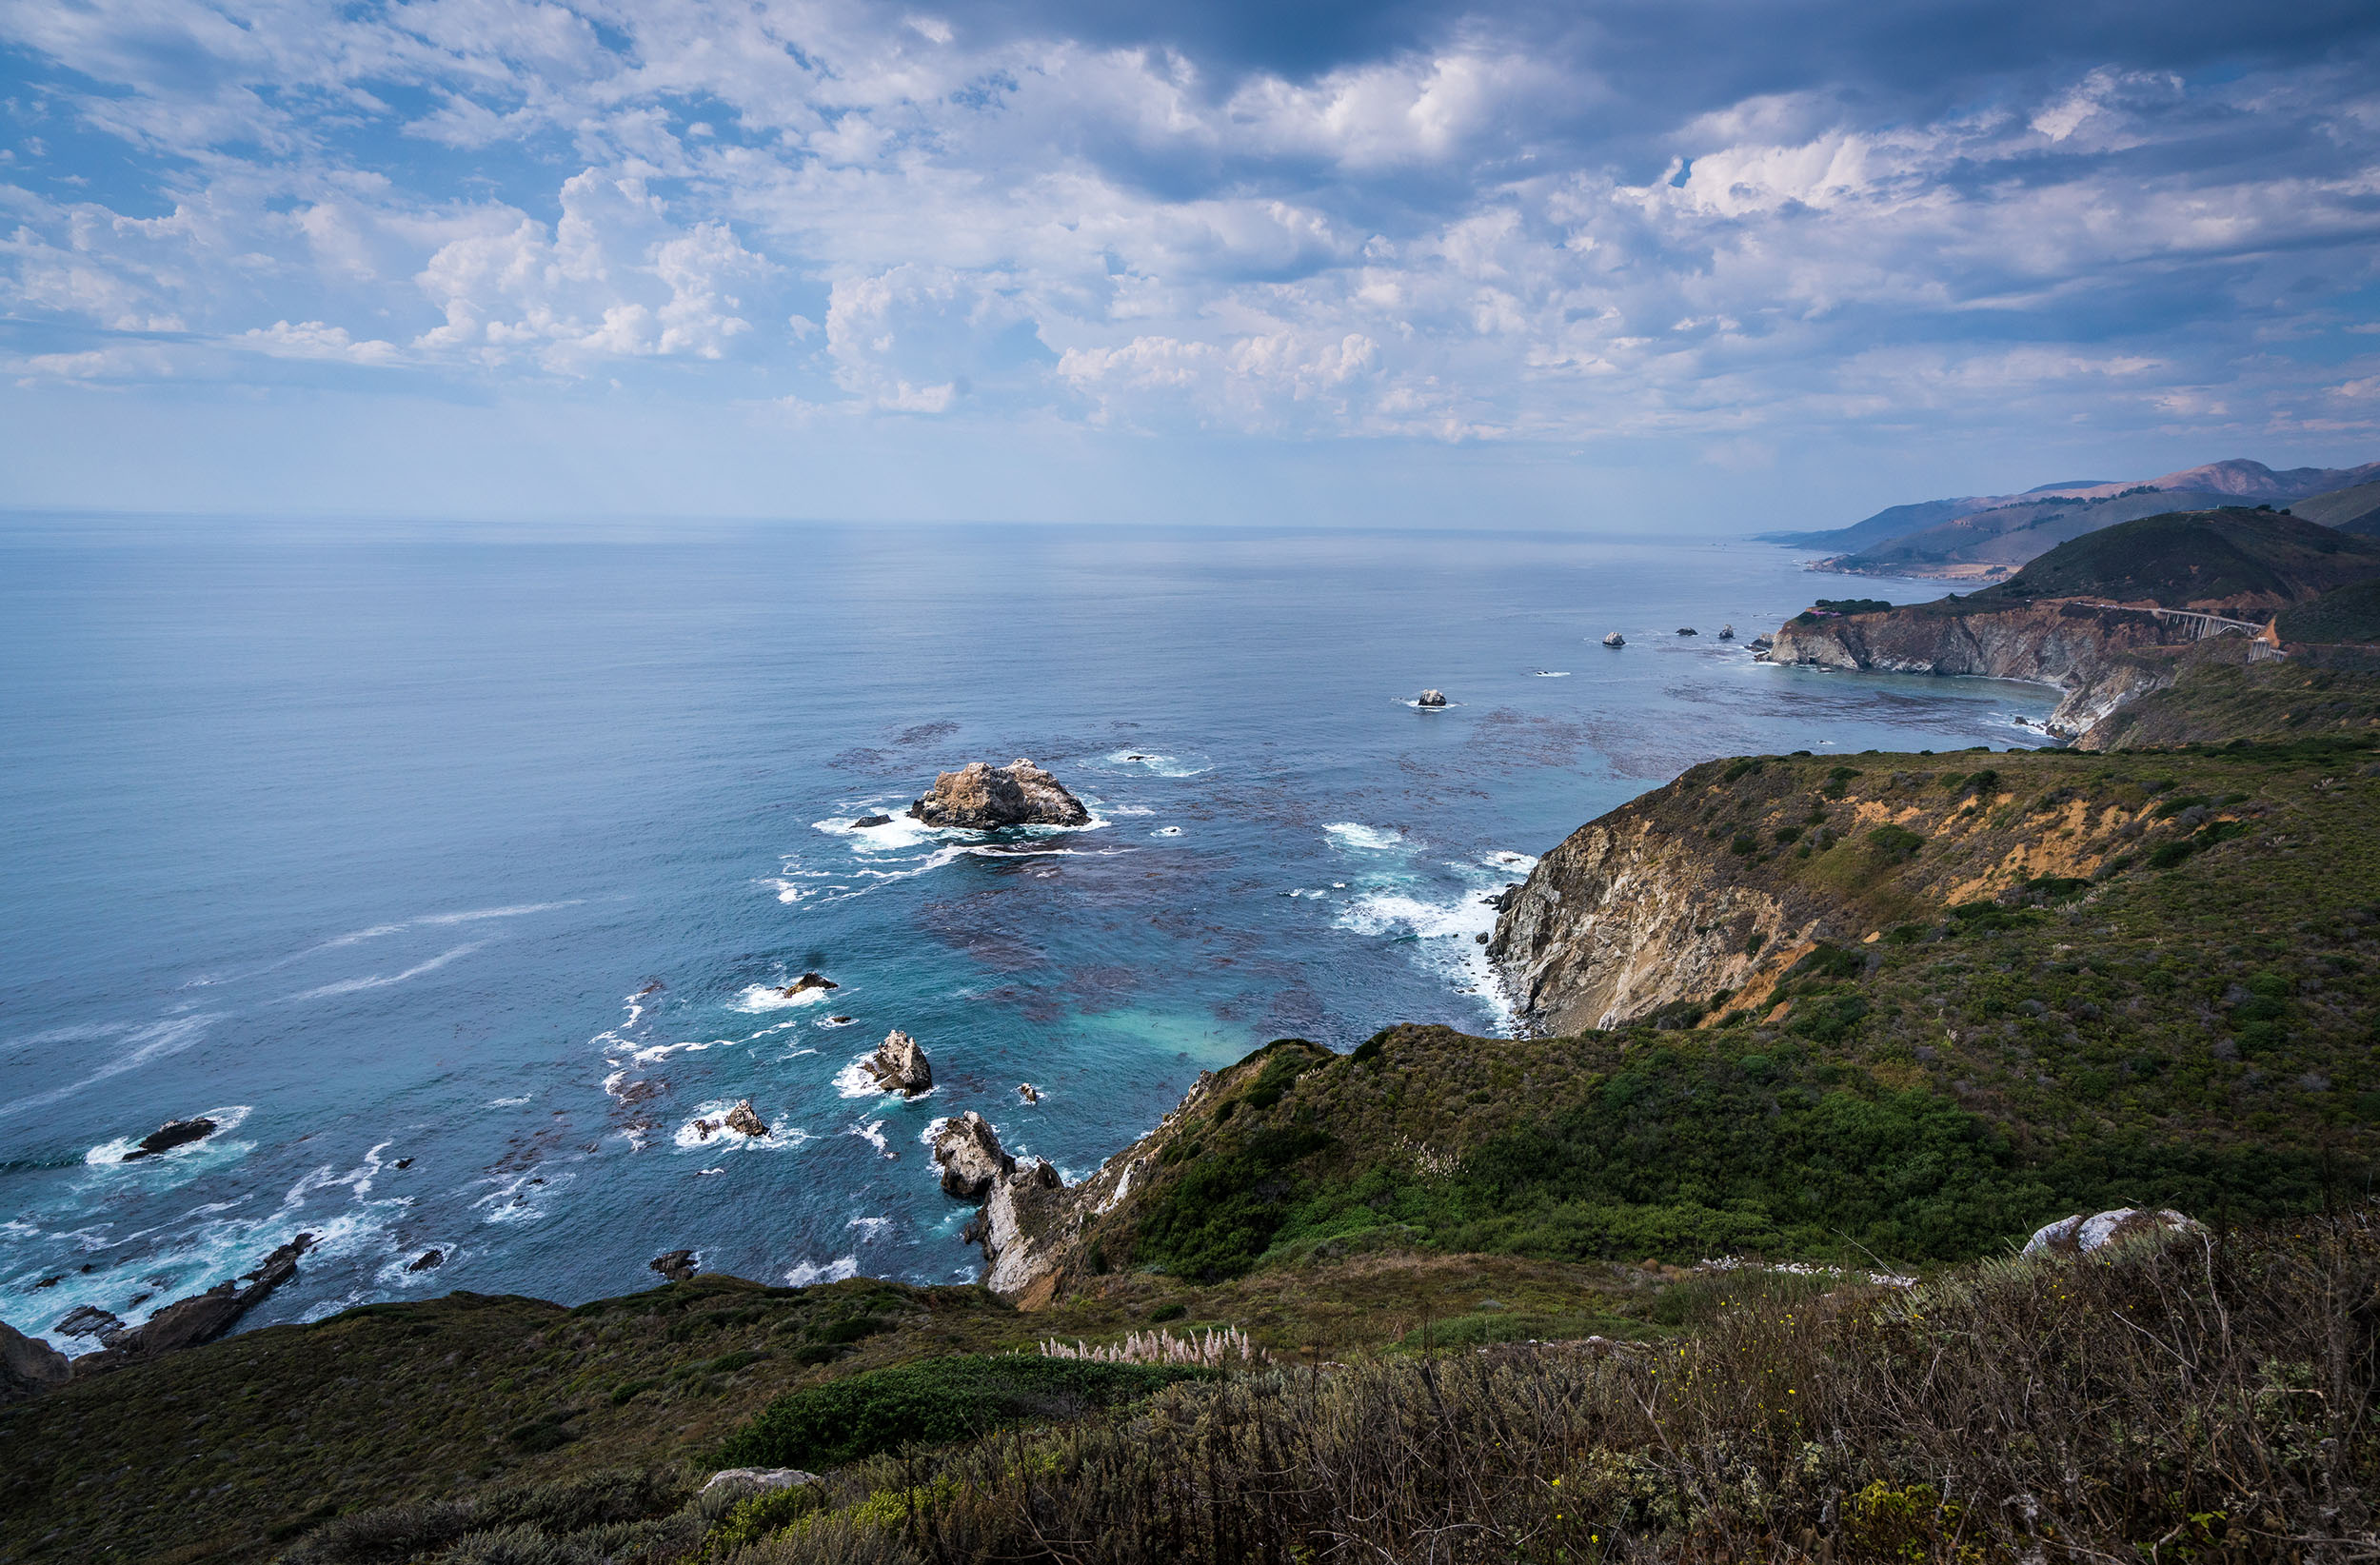 #bigsur, #hurricanepoint, #boulders, #granite, #rocks, #surf, #clouds, #coastline, #pacific, #california, #monterey, #sony, #wideangle